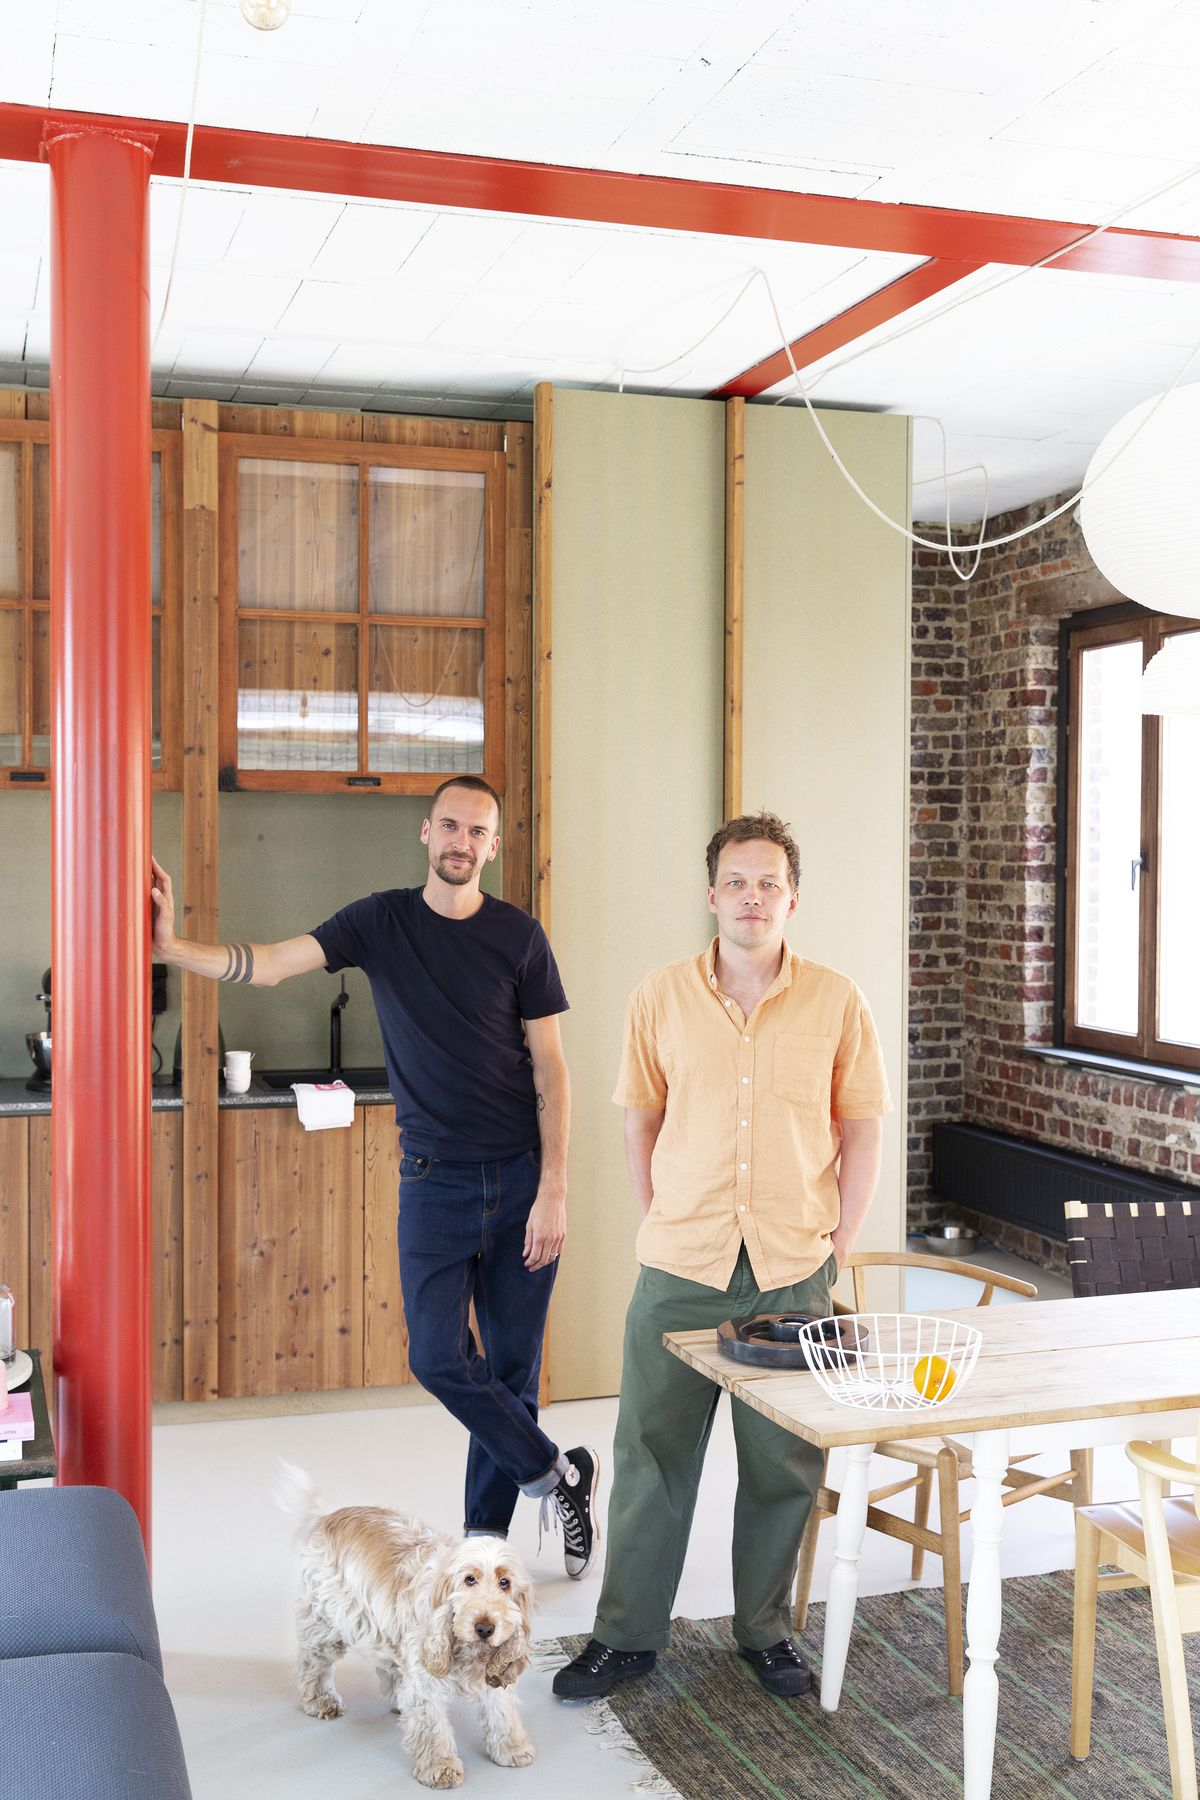 The homeowners, two men, stand in a room with a tan and white dog. There is a wooden table and a red column. On the far wall is a sink and wooden cabinetry.